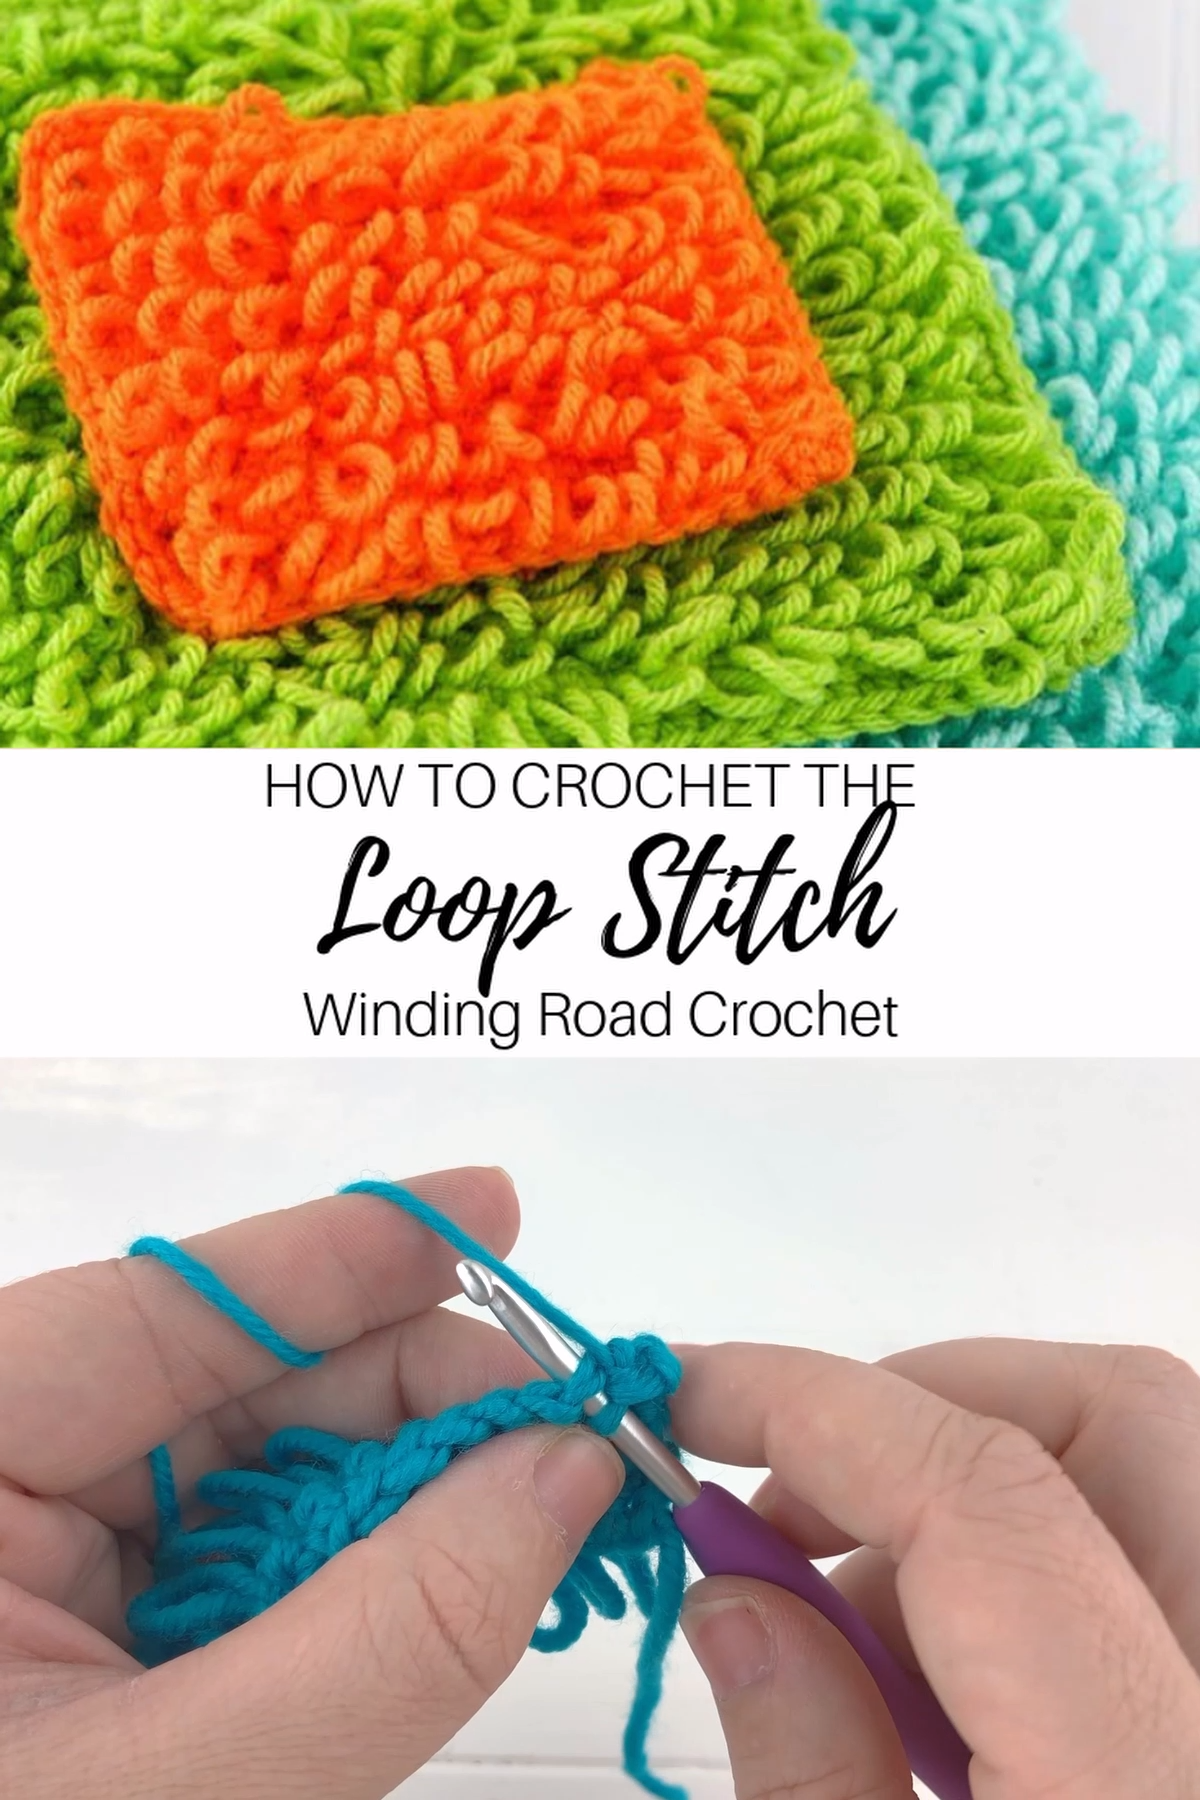 The loop stitch is a beautiful stitch that makes loops while you crochet. Use this video and photo tutorial to learn how to make this stitch. #crochetstitch #crochettutorial #crochetvideo #loopstitch #Häkeln Sie Videos How to Crochet: Loop Stitch Video Tutorial #crochetstitchestutorial